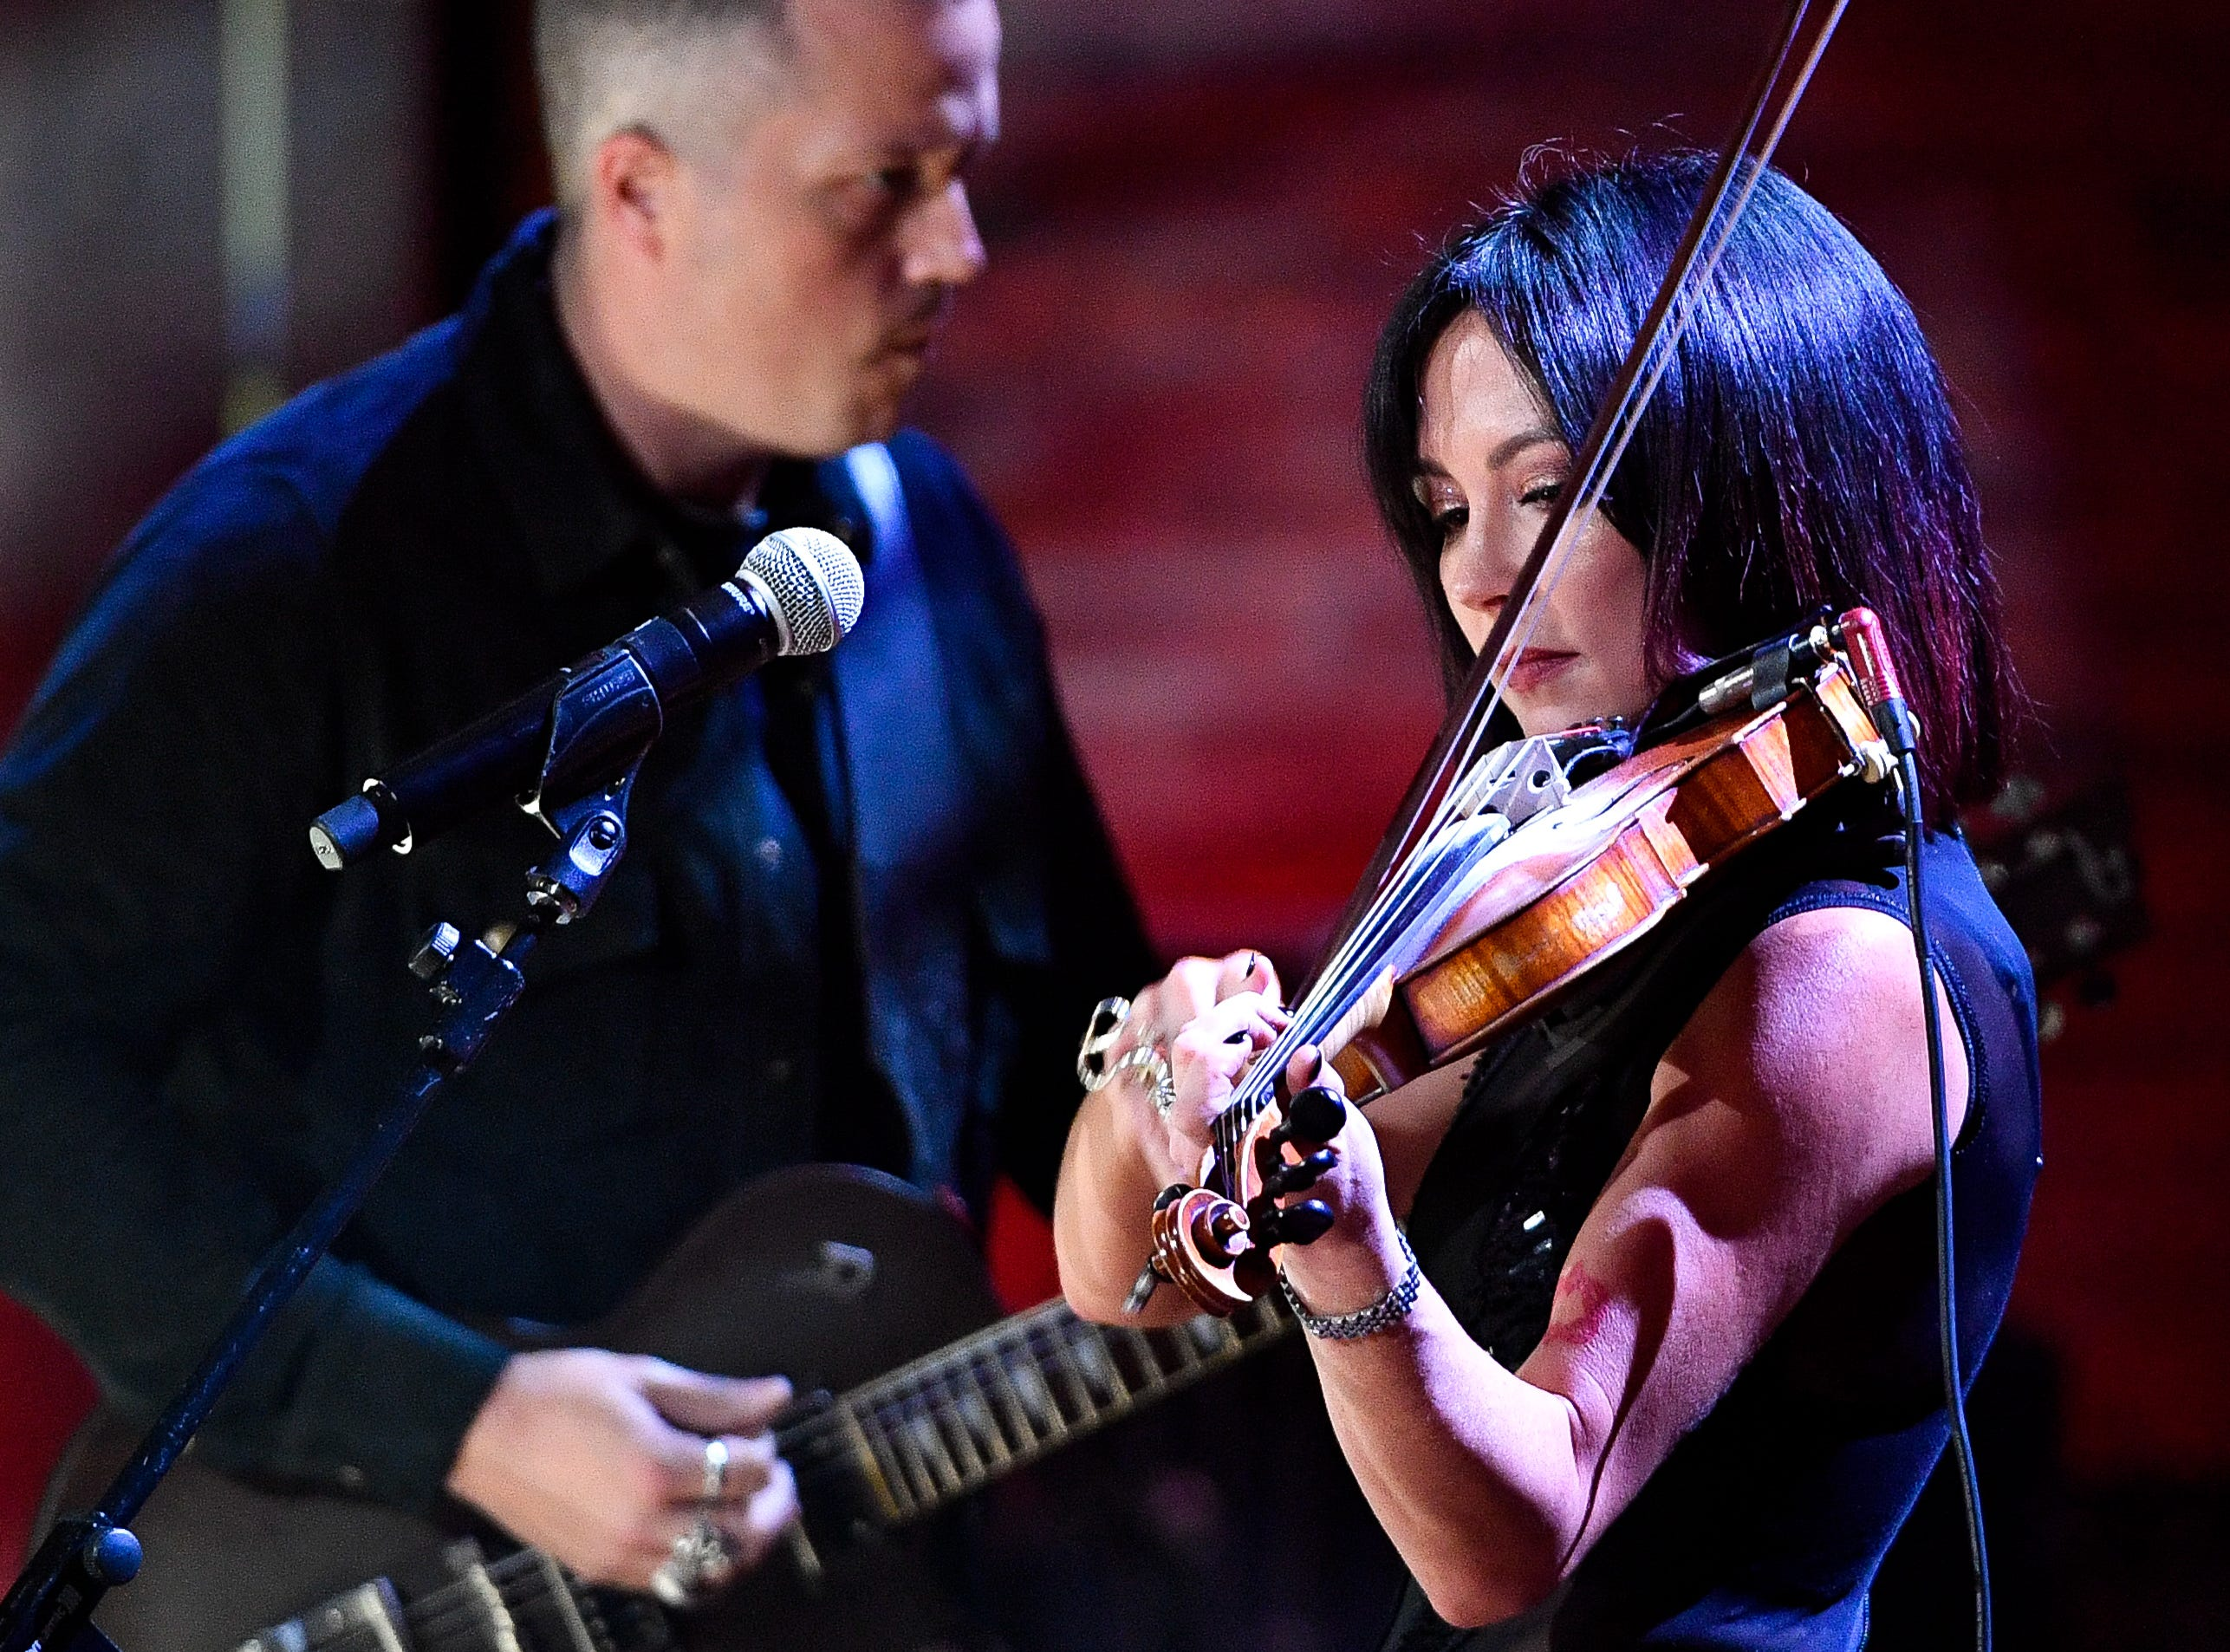 Amanda Shires performs with Jason Isbell and the 400 Unit perform during the 2018 Americana Honors and Awards show at the Ryman Auditorium in Nashville, Tenn., Wednesday, Sept. 12, 2018.